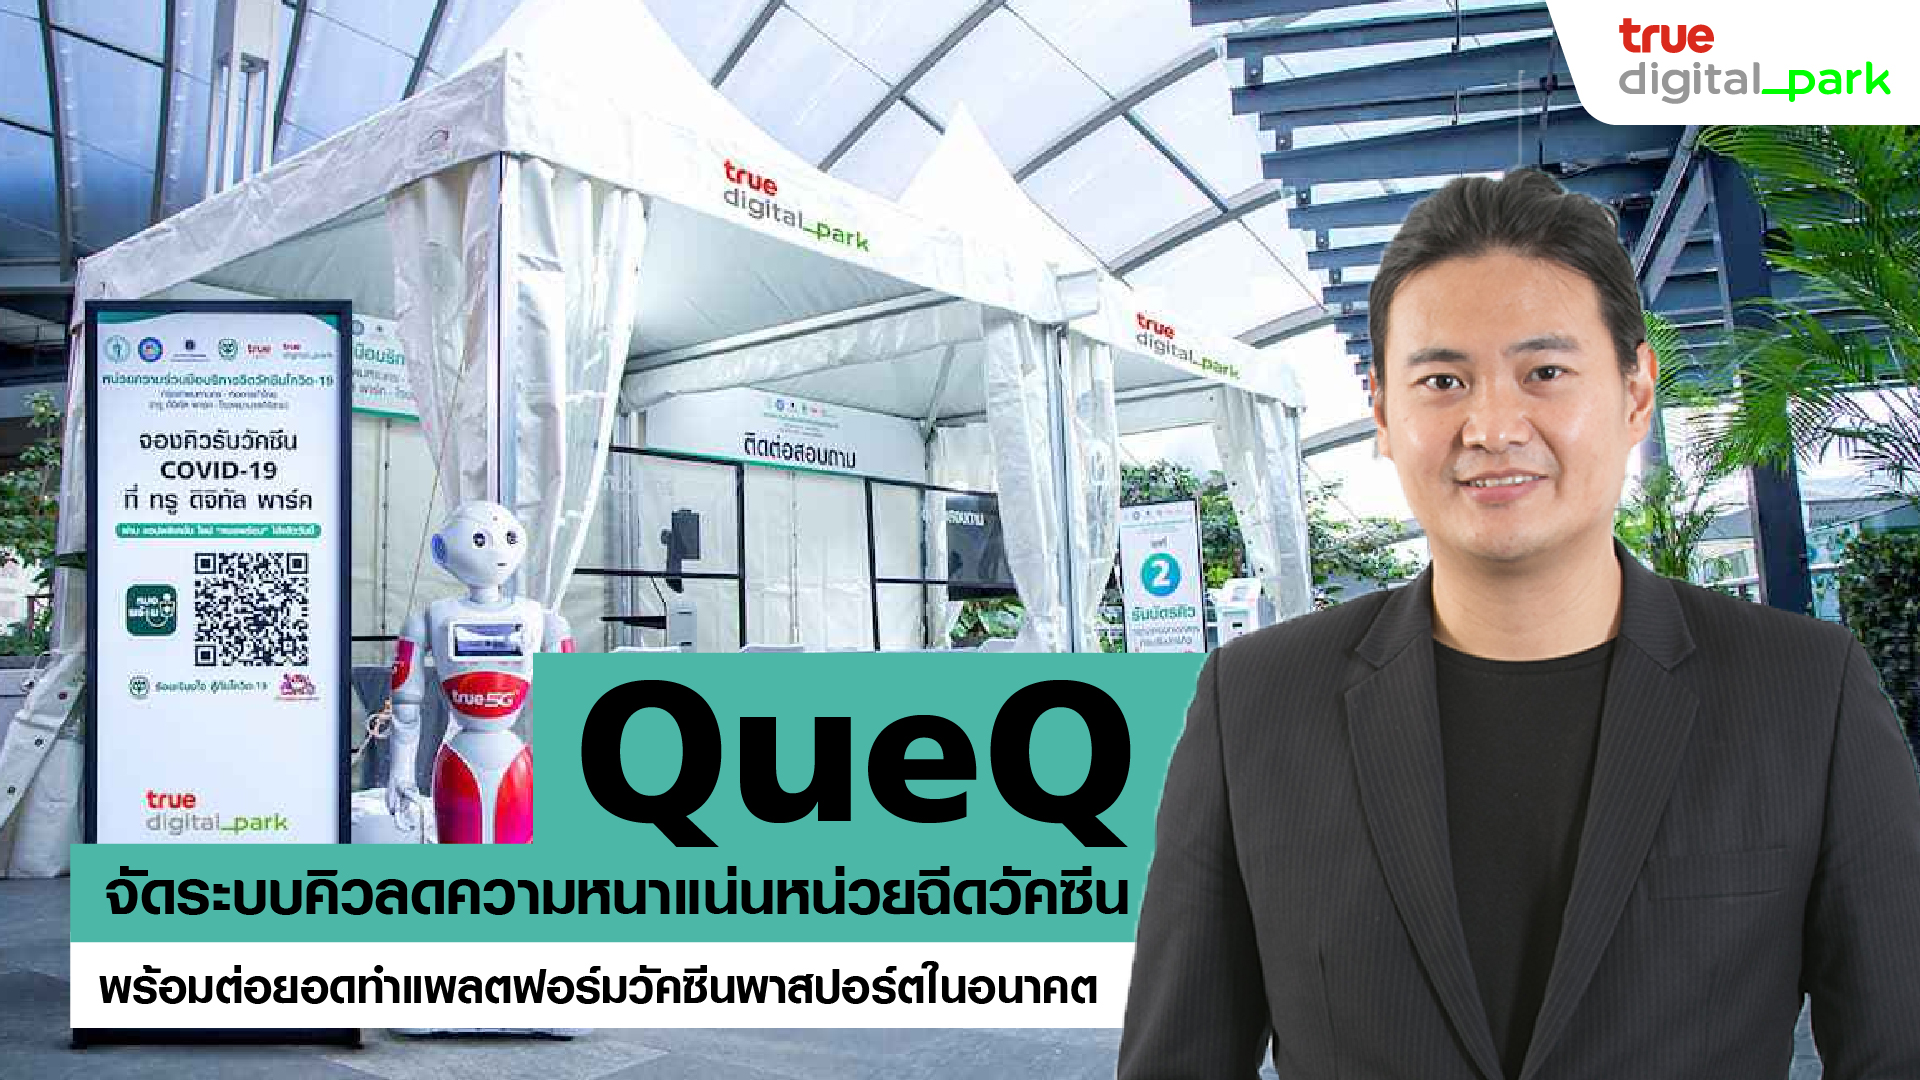 """Reducing the crowds at vaccine units, Thai startup """"QueQ"""" works quickly to implement queuing system"""